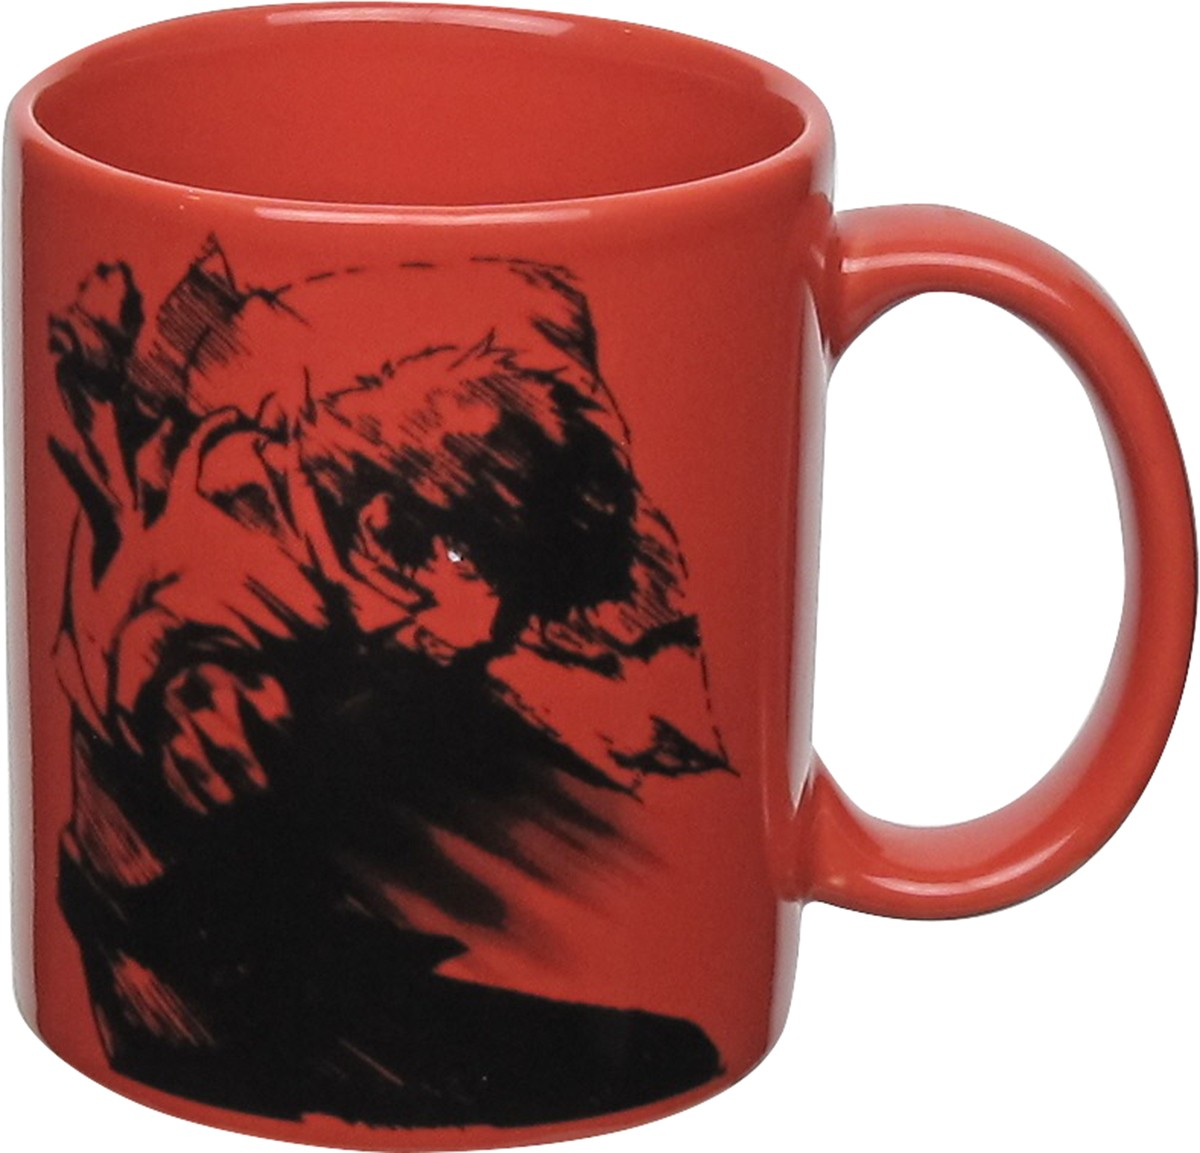 cowboy bebop spike spiegel sketch red mug. Black Bedroom Furniture Sets. Home Design Ideas